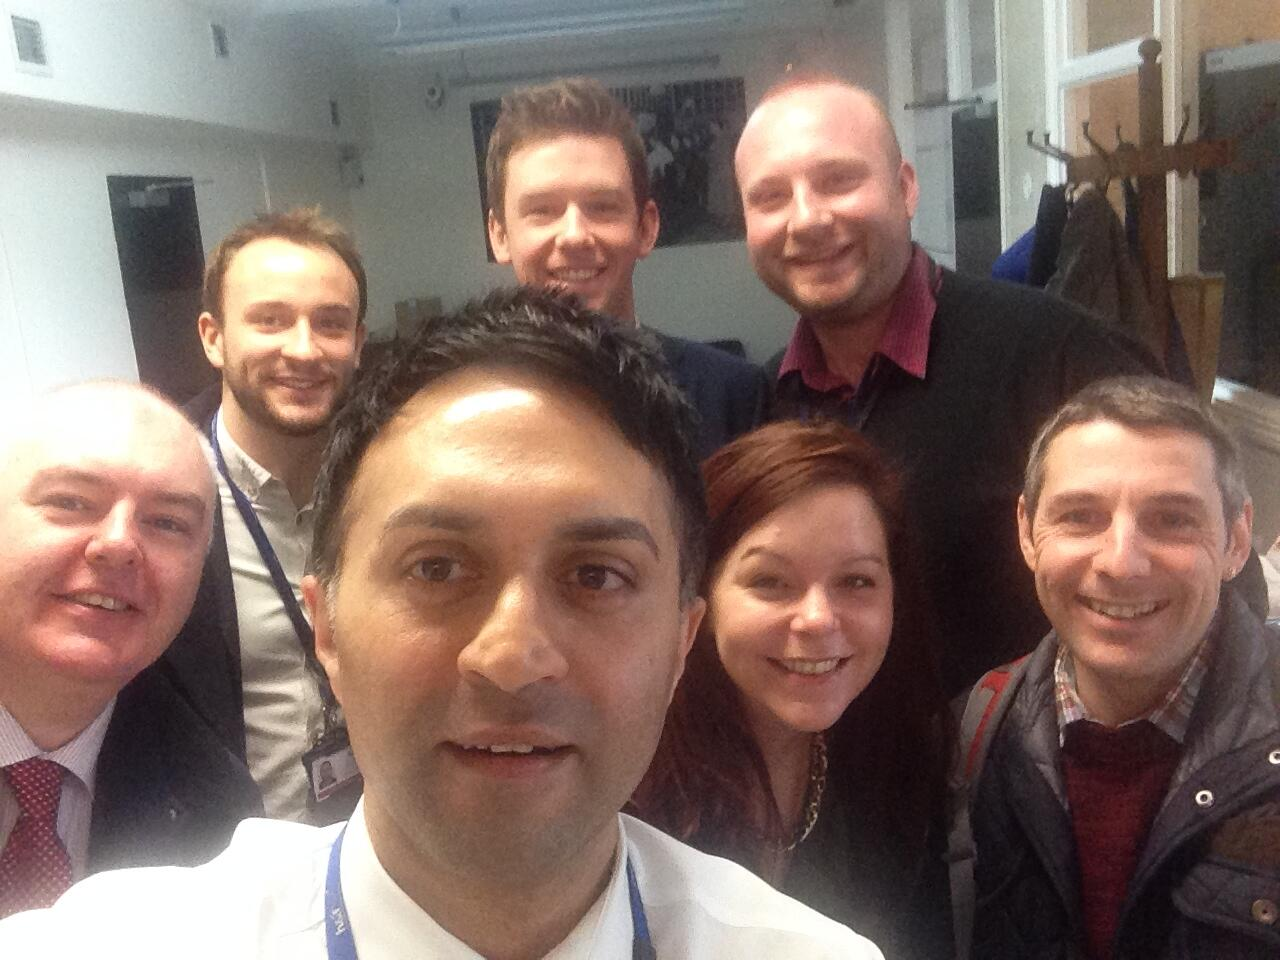 a selfie of the H&F & RBKC Prevent team for our #SupportCharityNotCrime day  to promote safer charity giving http://t.co/MtePcHeVkp